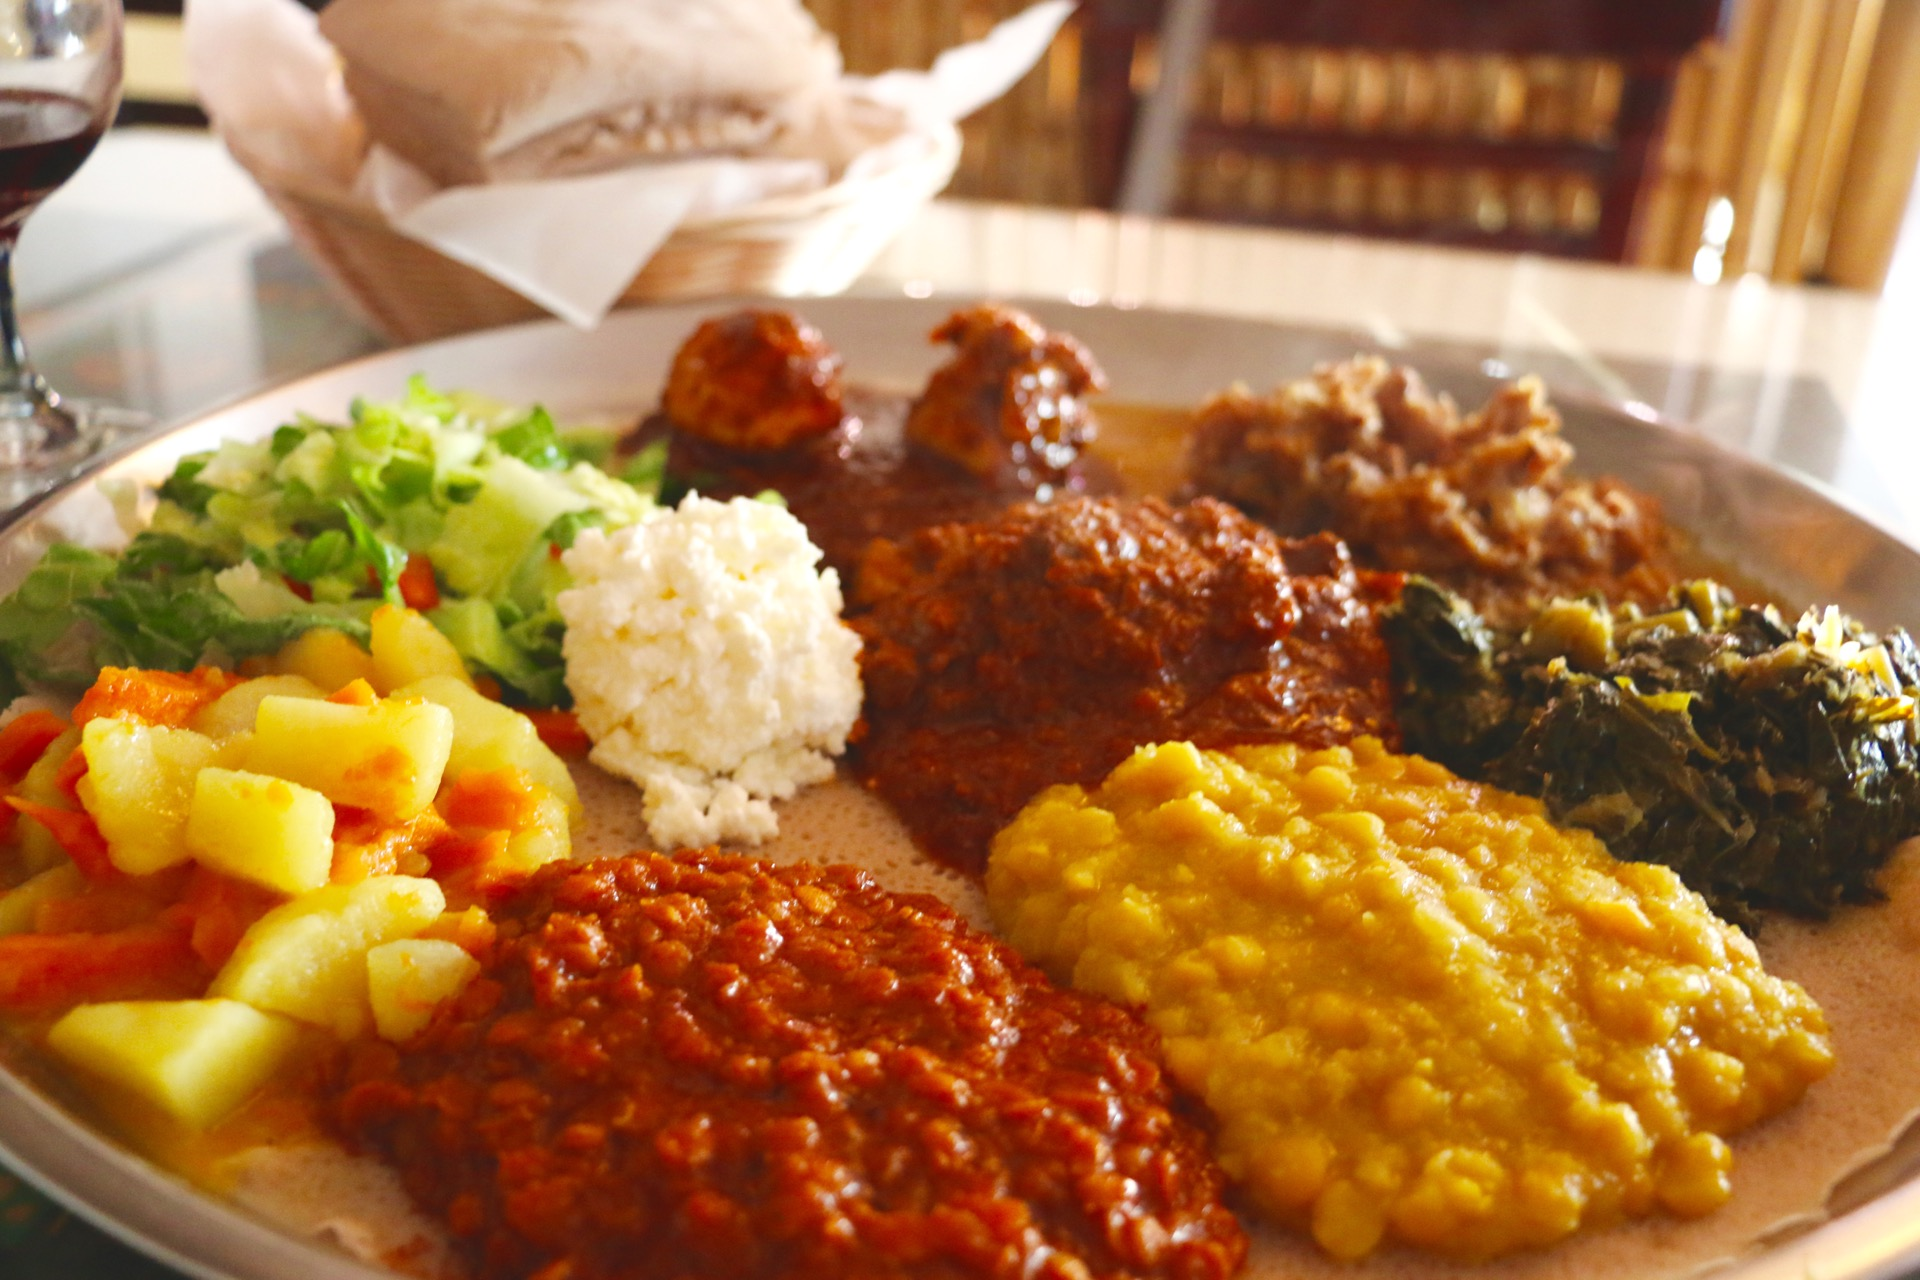 Addis' meat and vegetable combination plates served on one platter.